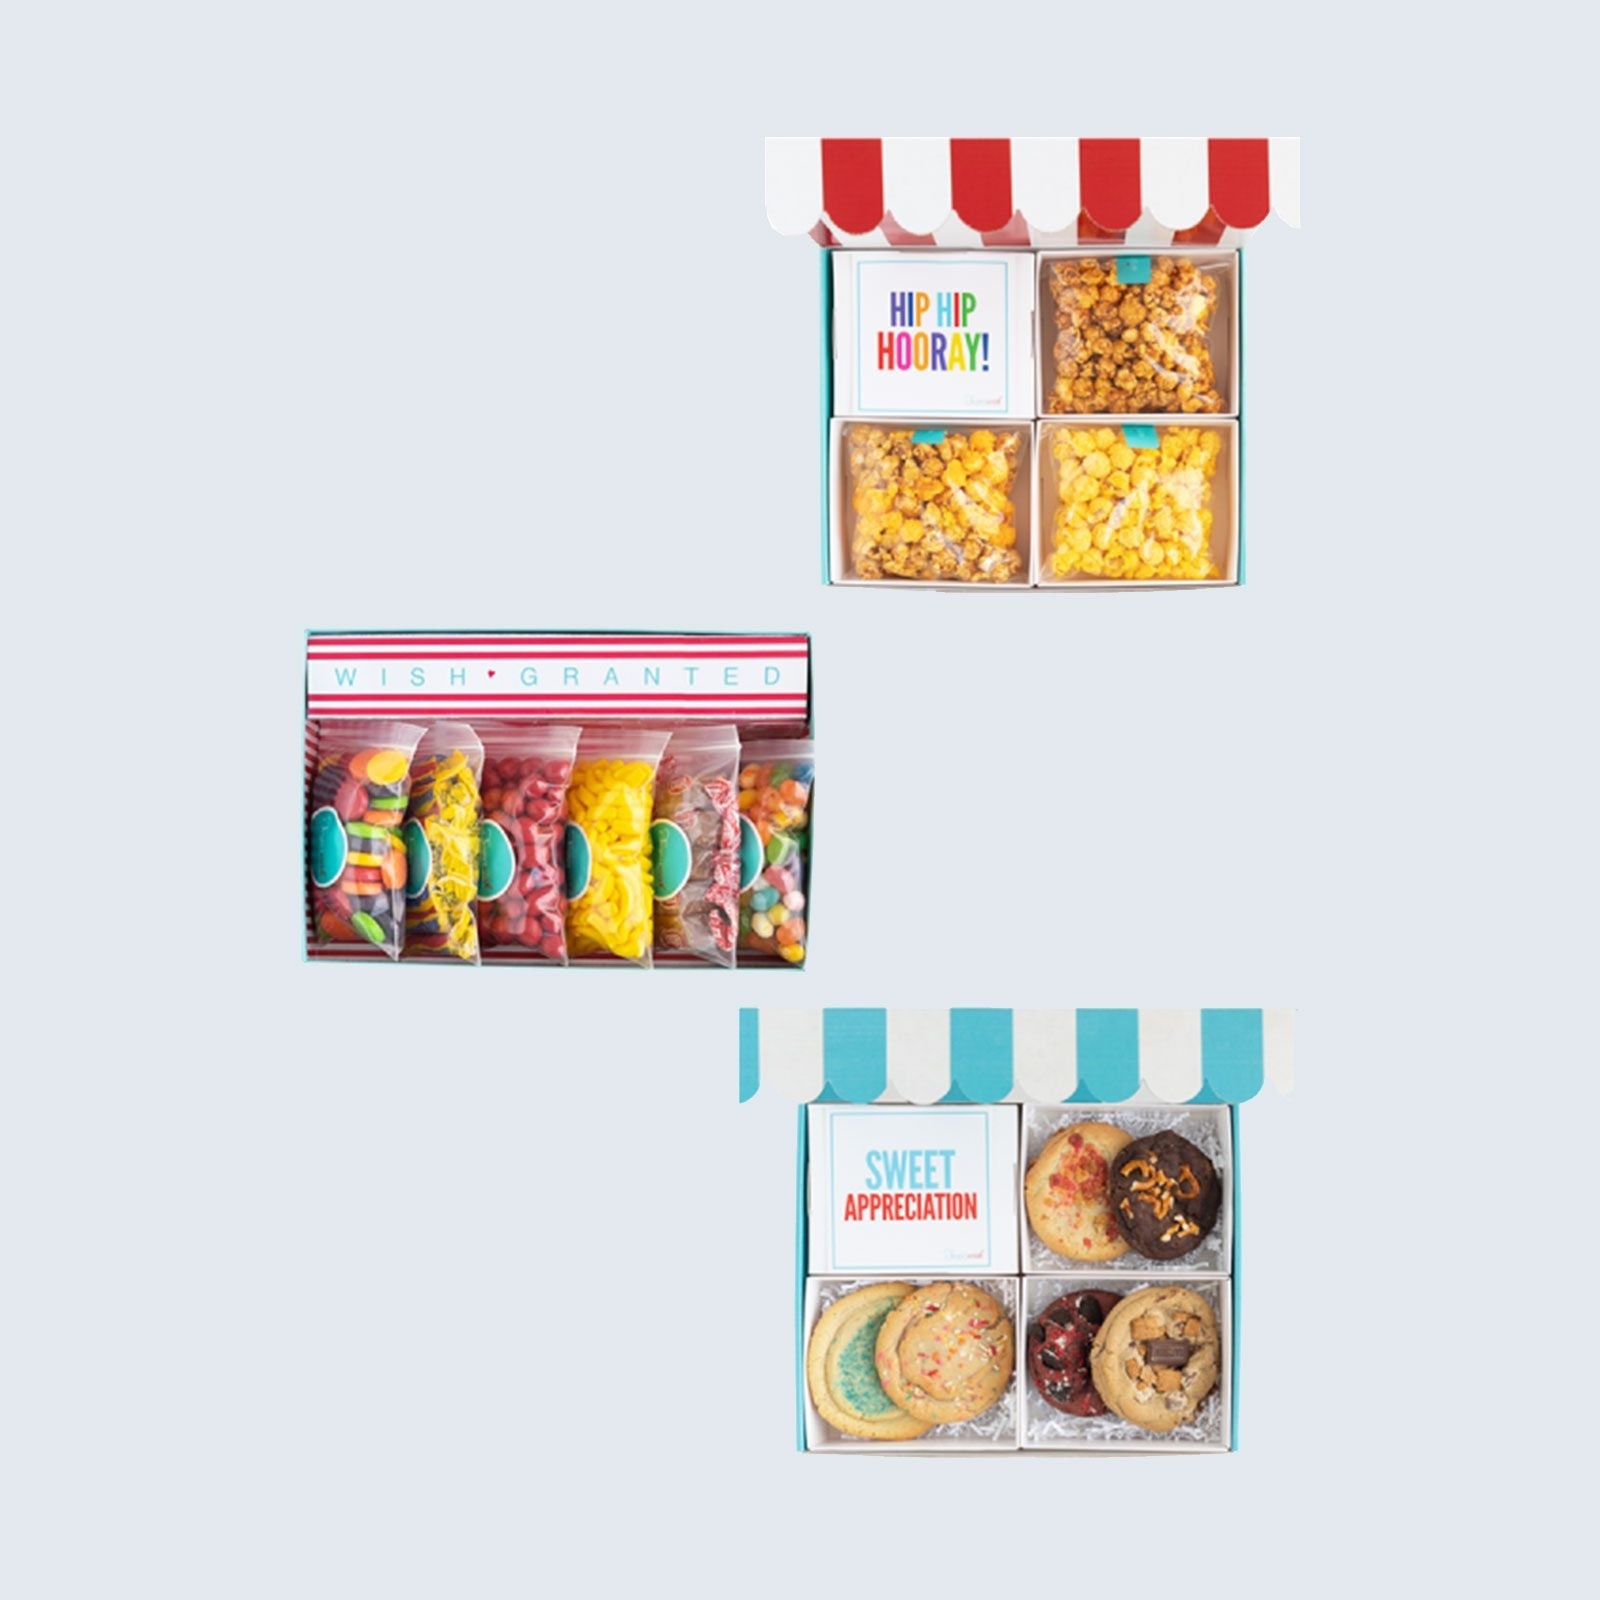 For the man with a serious sweet tooth: The Sugarwish Select